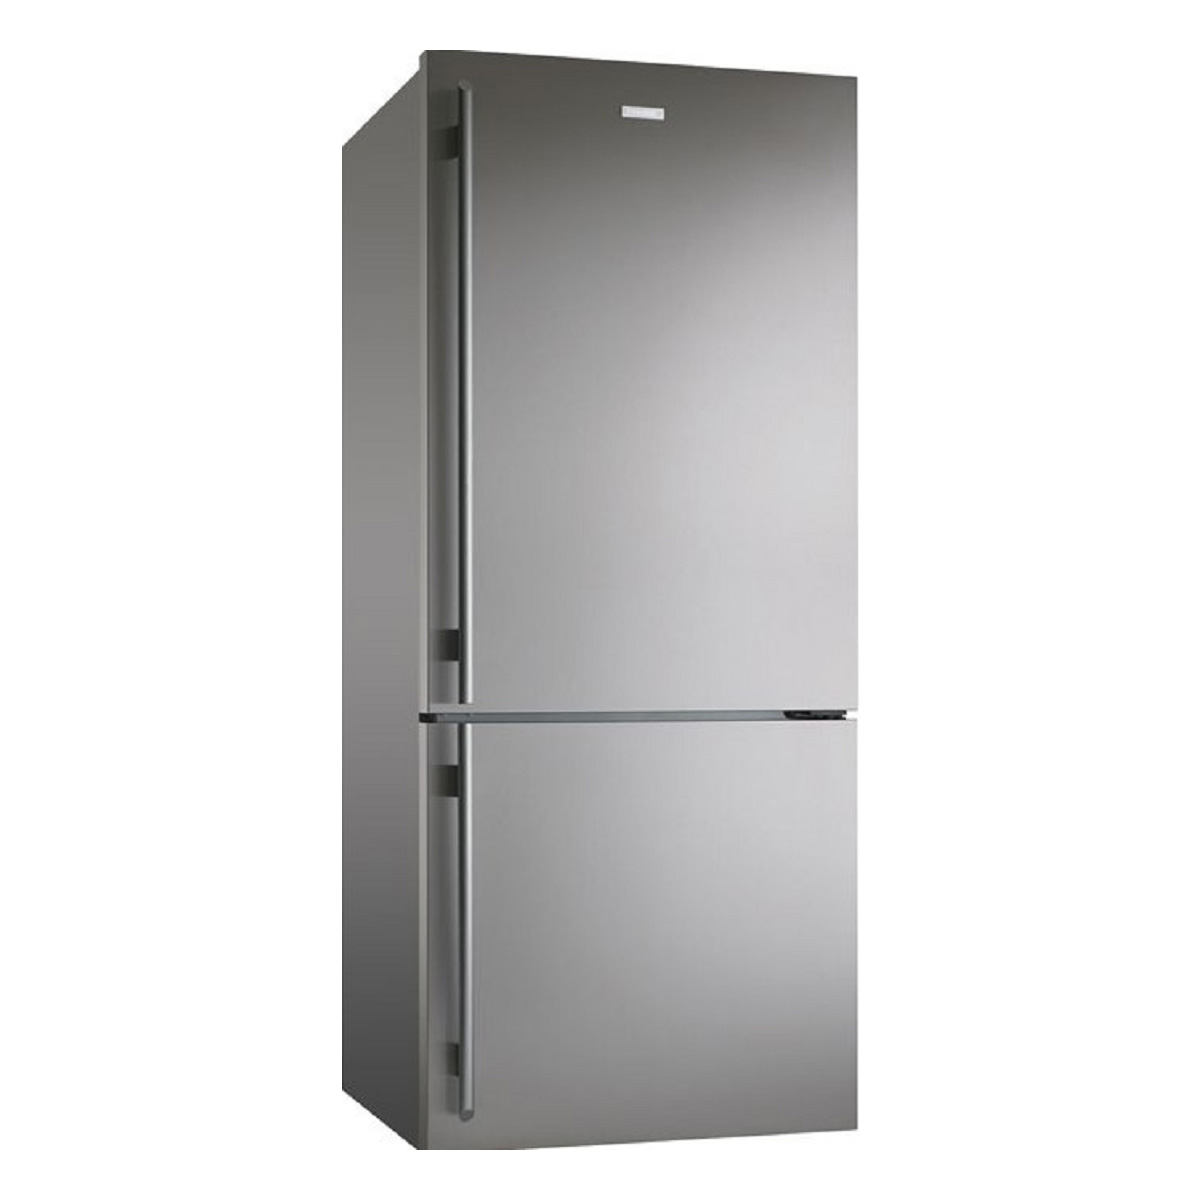 Electrolux 430L Bottom Mount Fridge EBM4307SC-L 38849